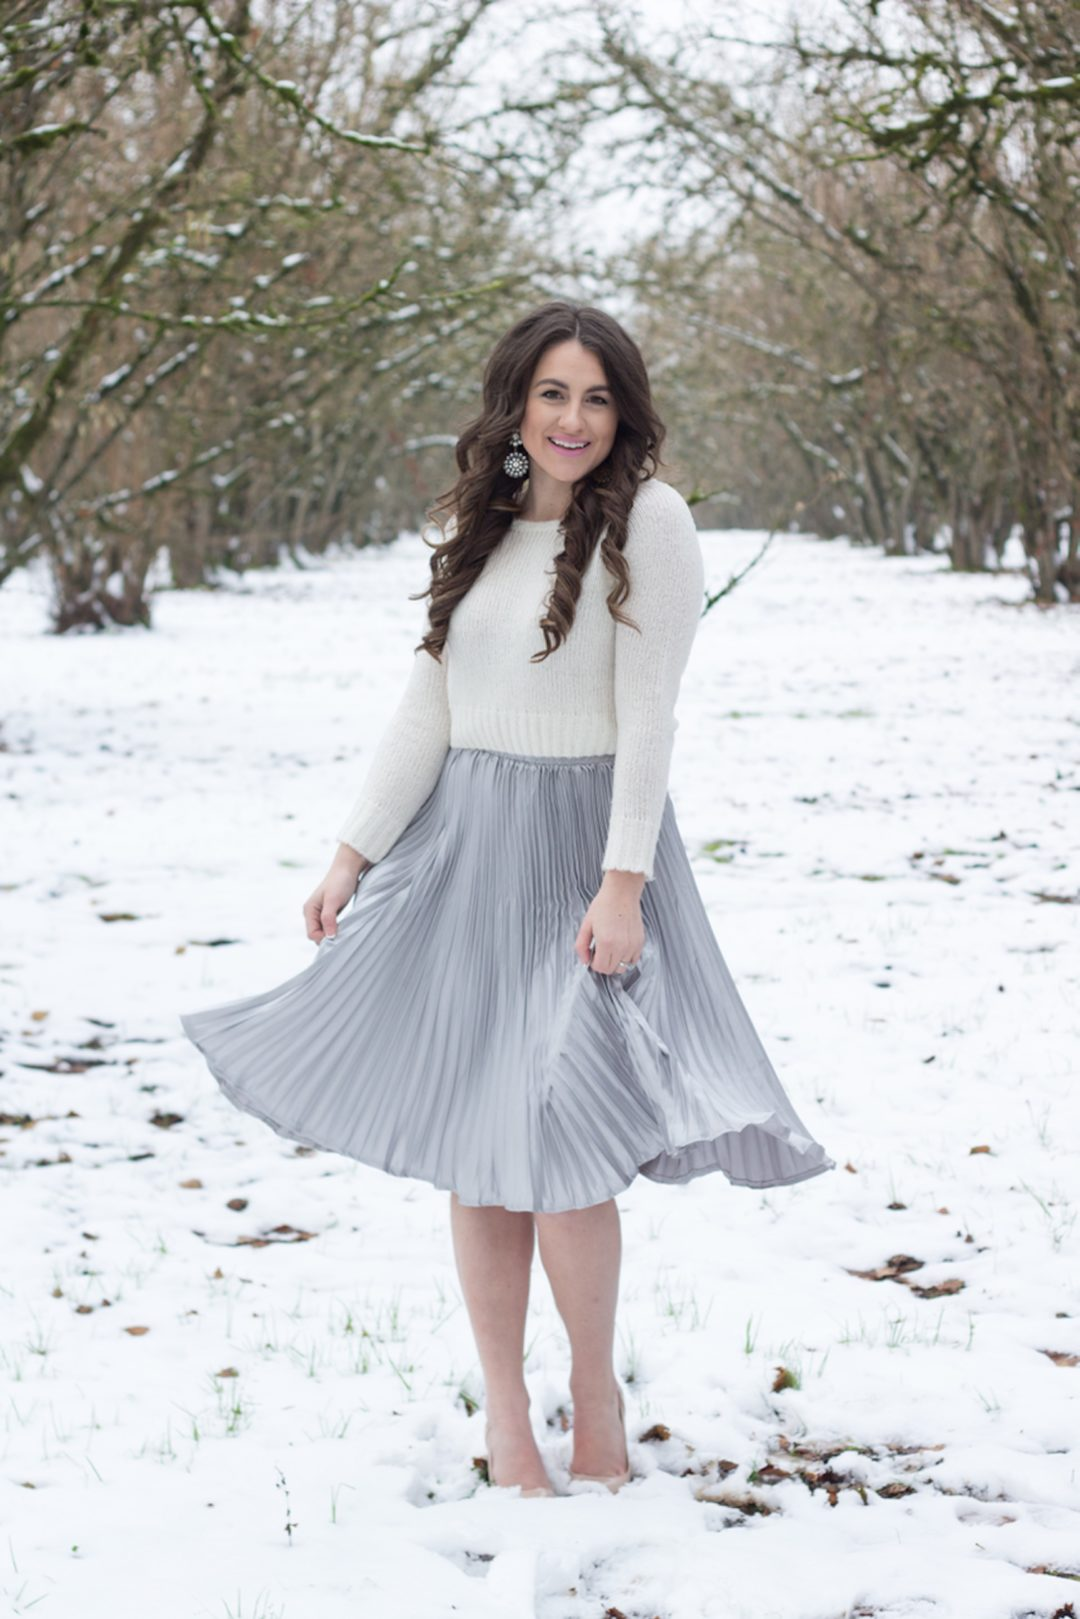 Celebrating the new year with One Hope champagne in a silver pleated skirt and cream sweater while walking in the snow.